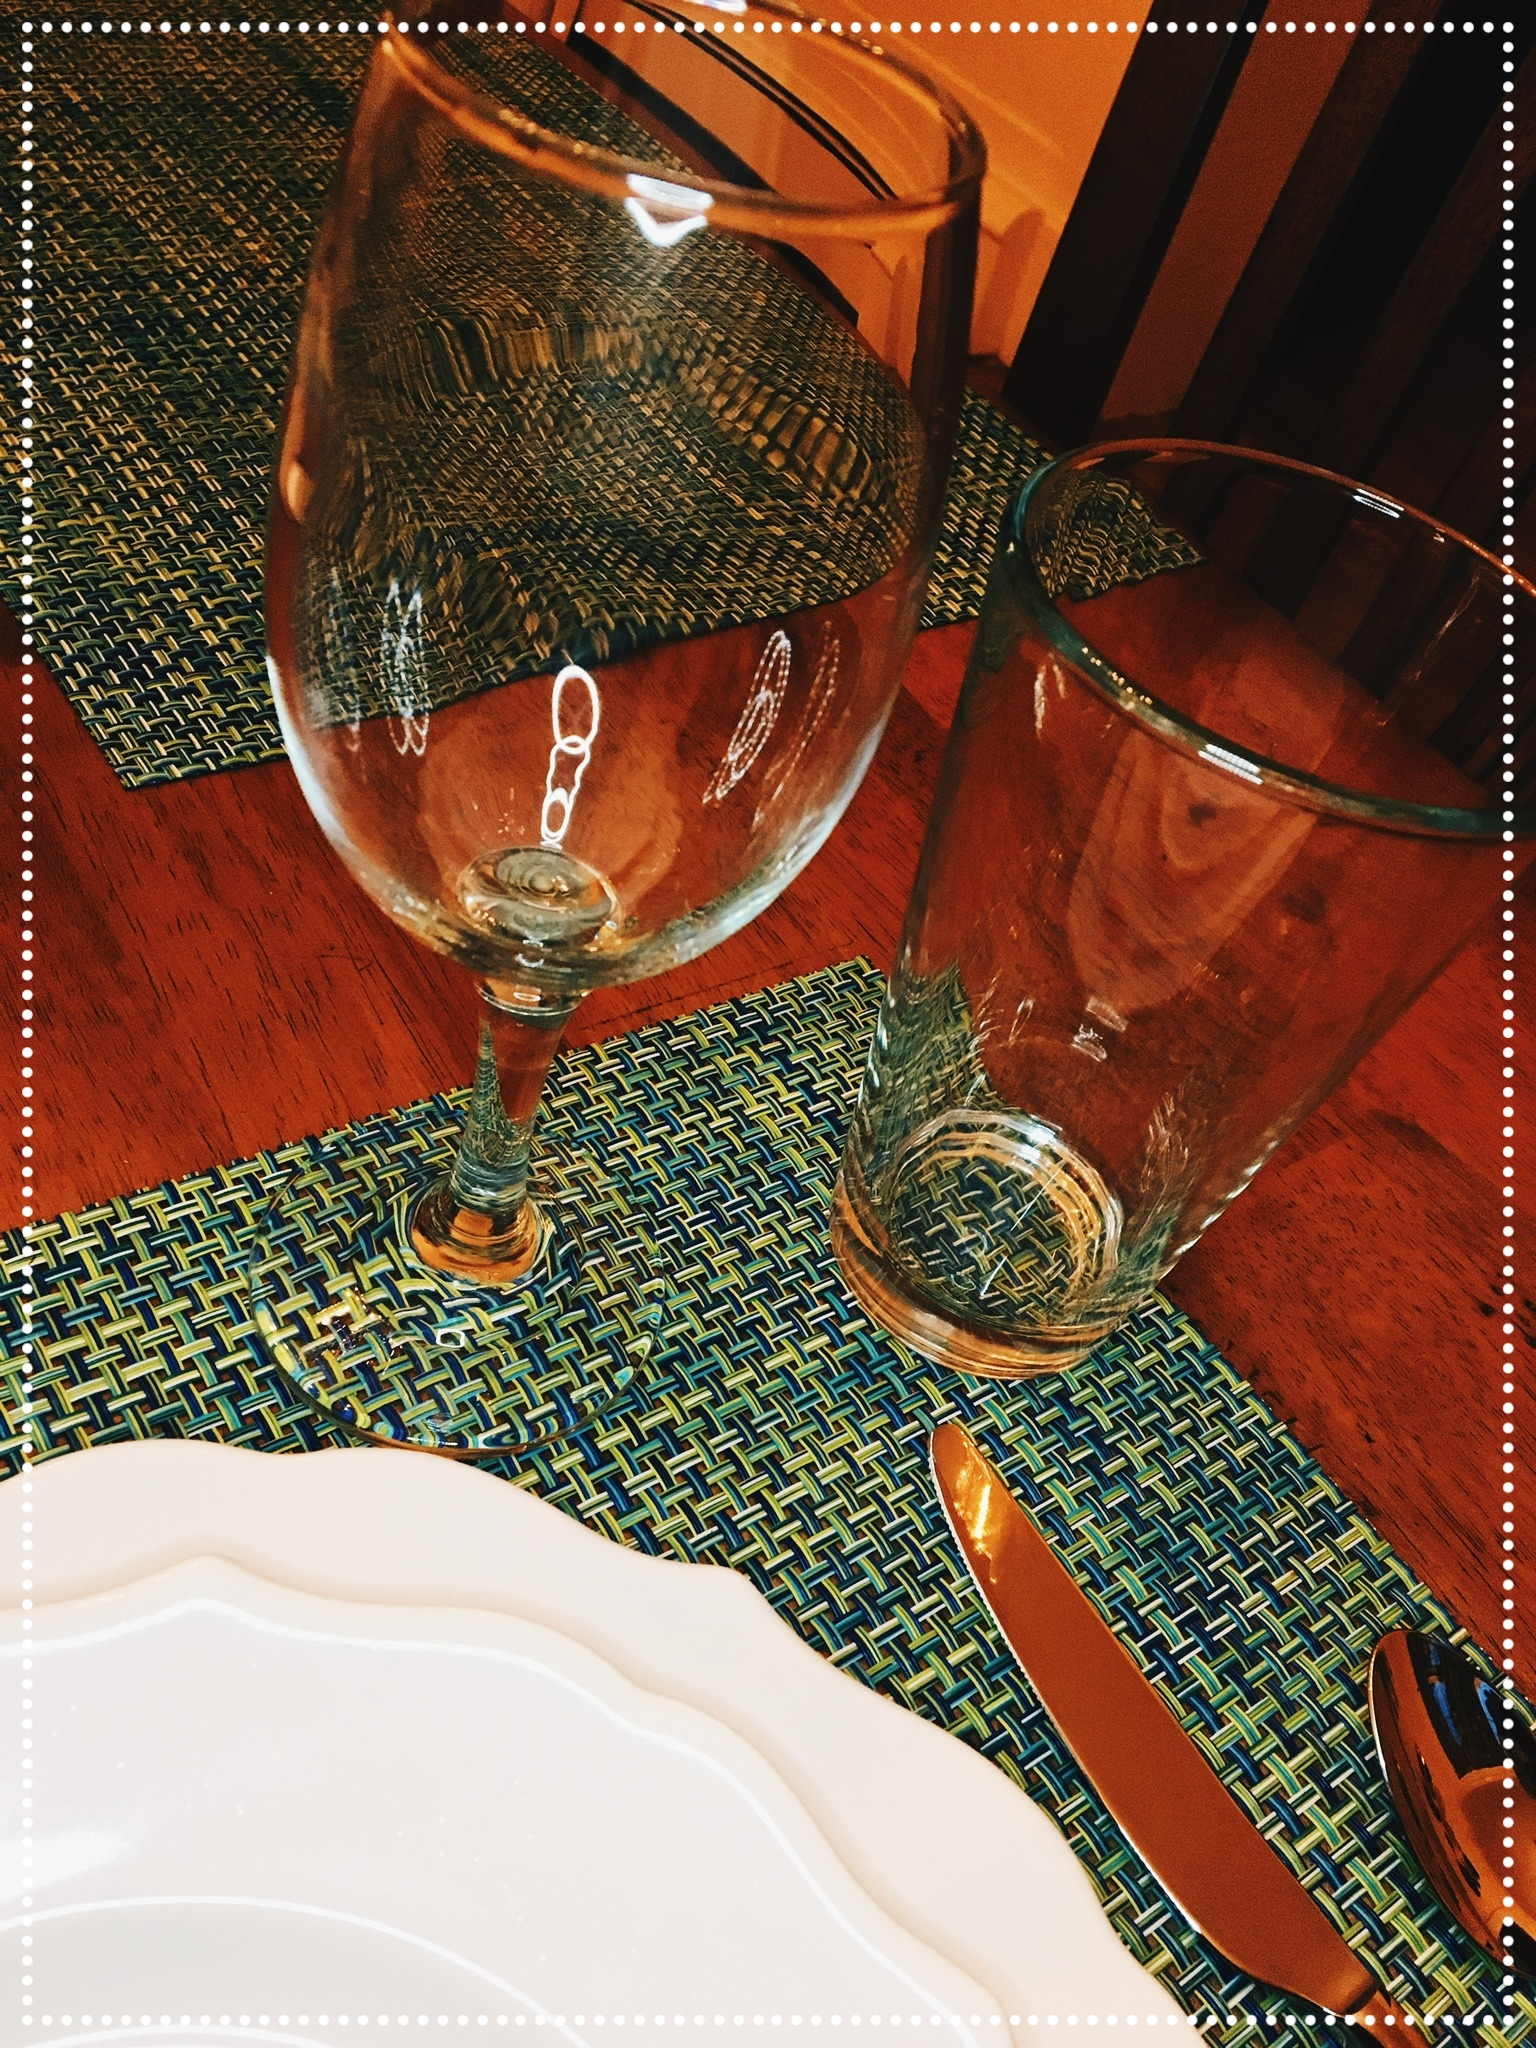 Beverage glasses (wine and water glasses) are often placed on the top right portion of your place mat.